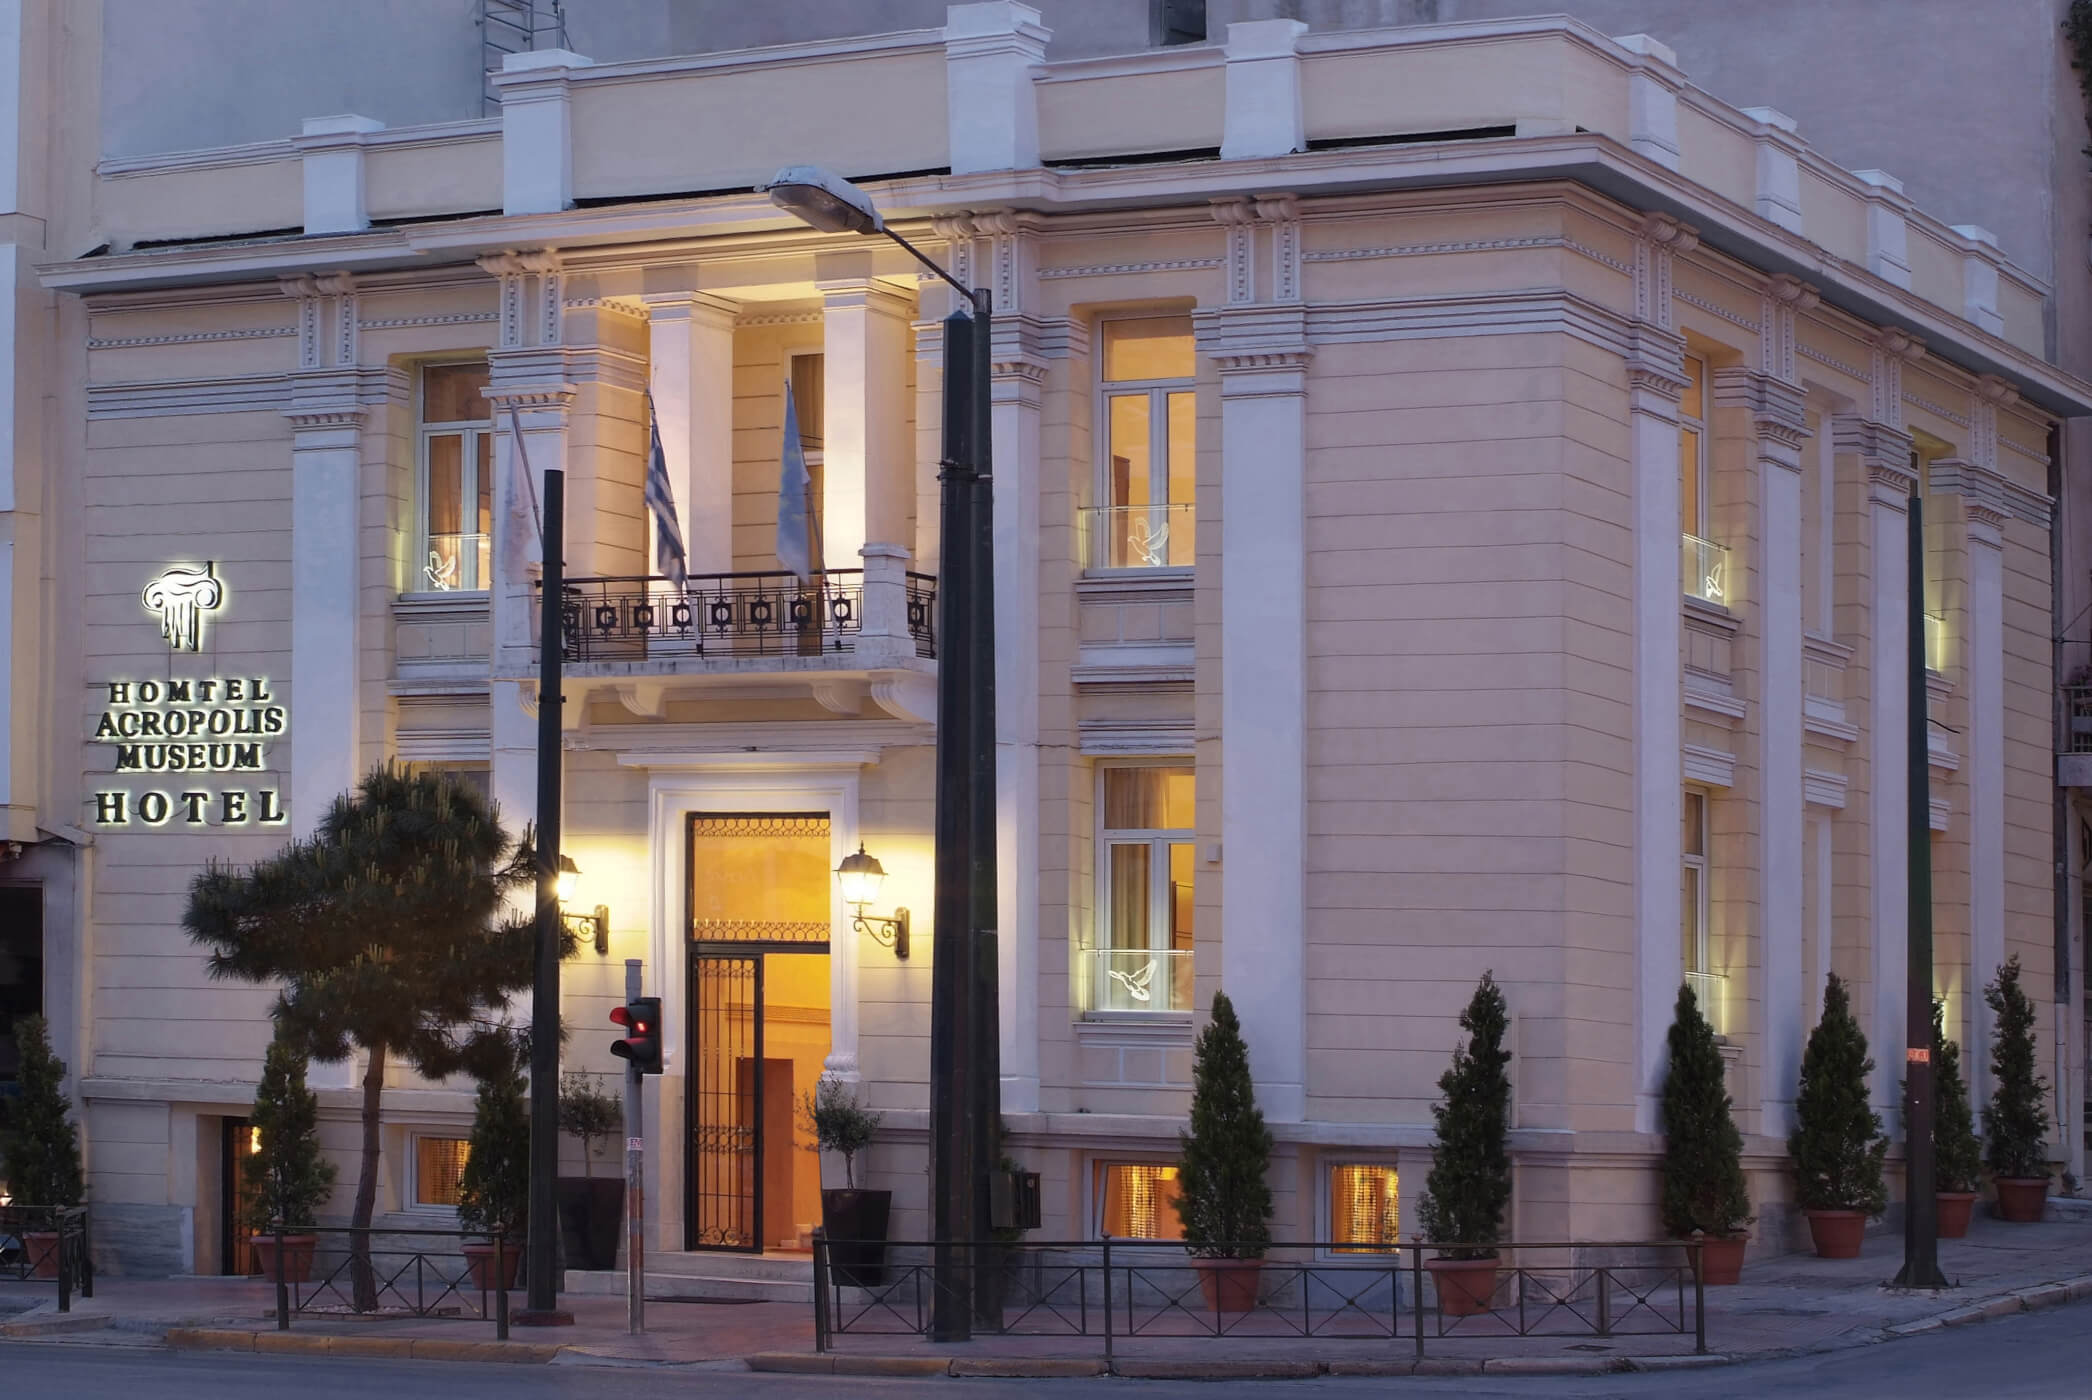 Acropolis museum boutique hotel hotels in athens for The best boutique hotels